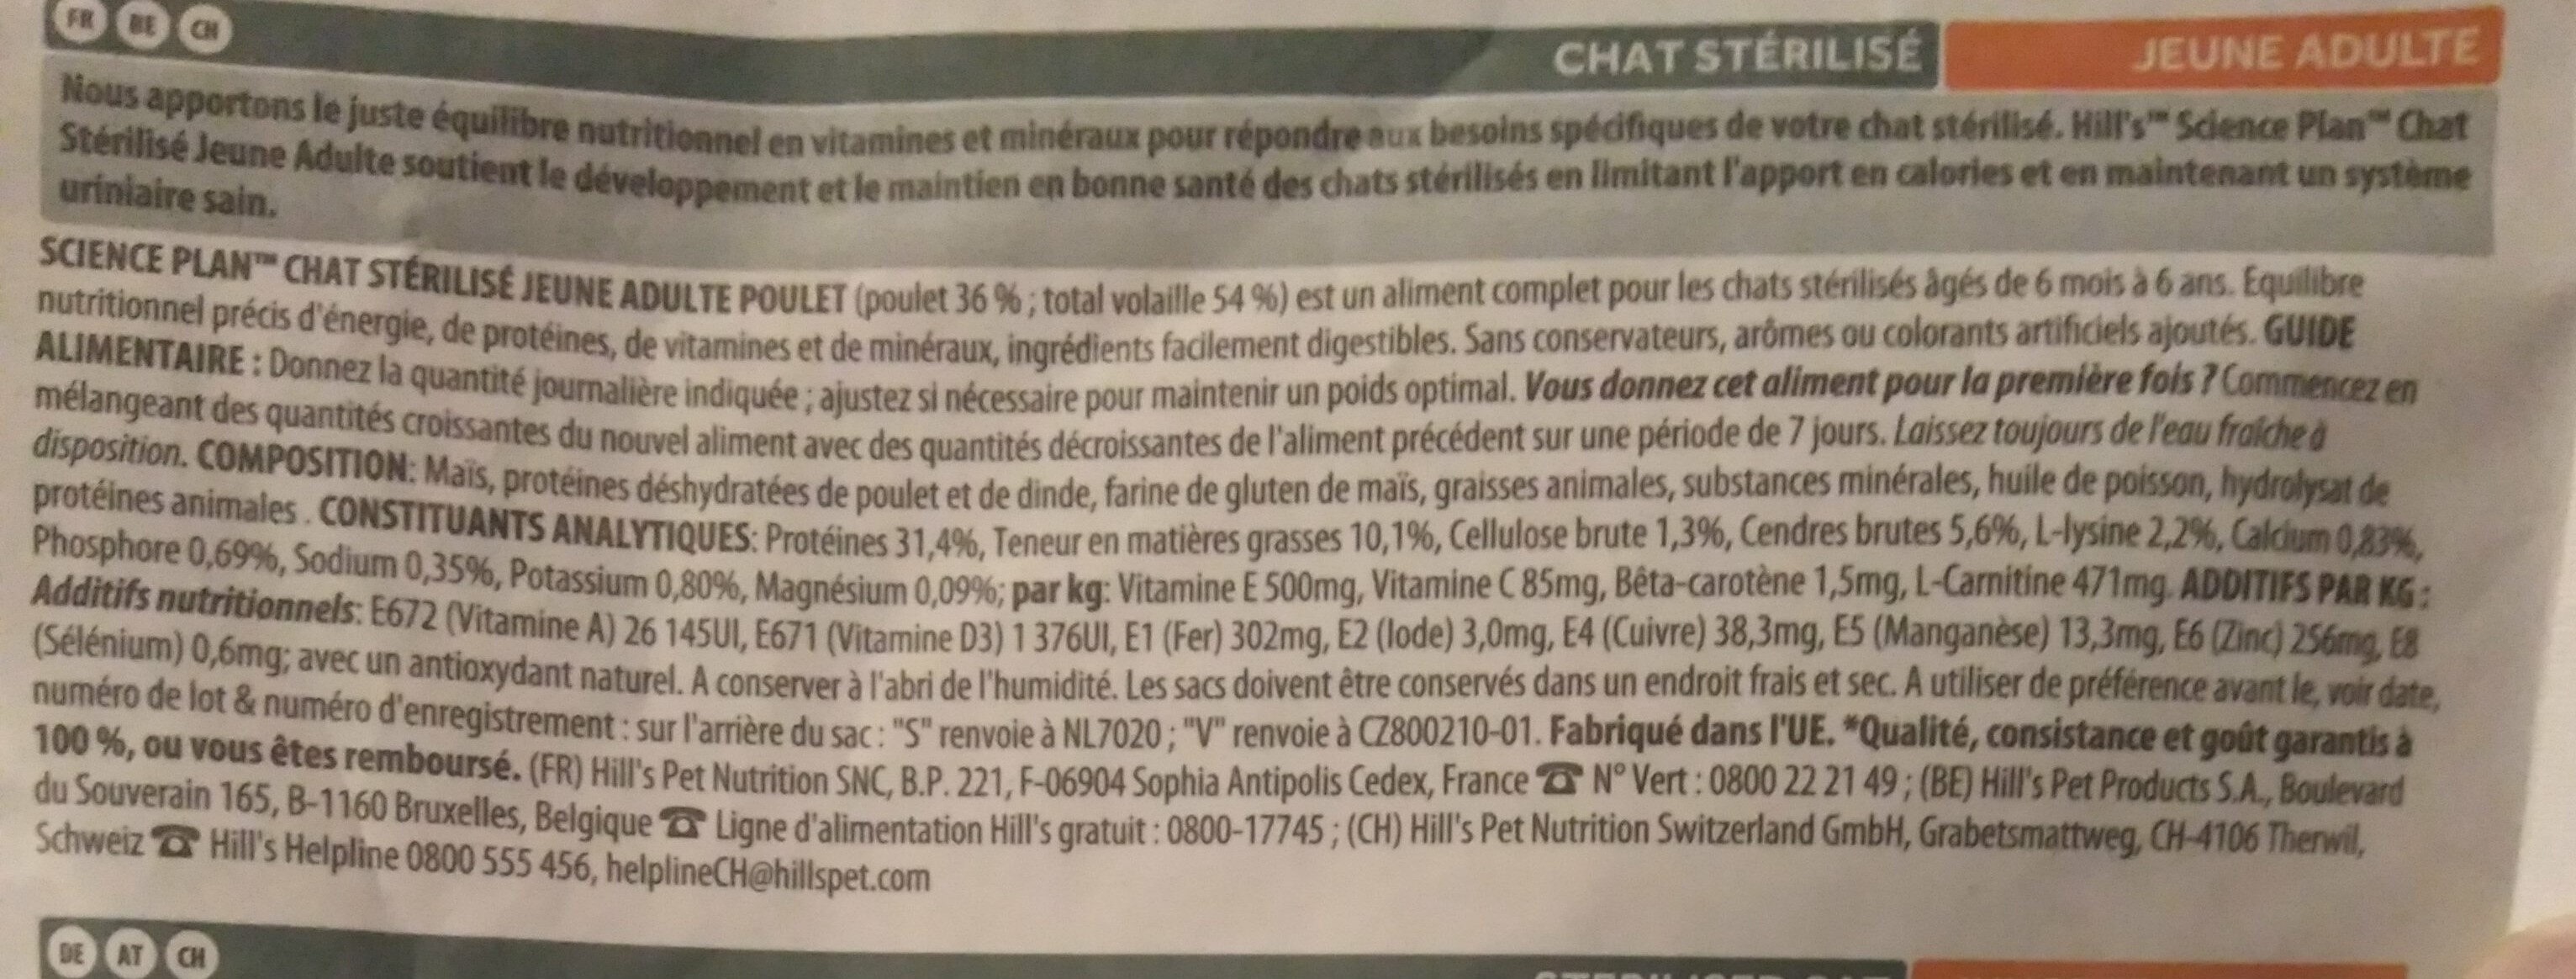 Sterilised cat Young adult 6 months - 6 years - Poulet - Ingredients - fr